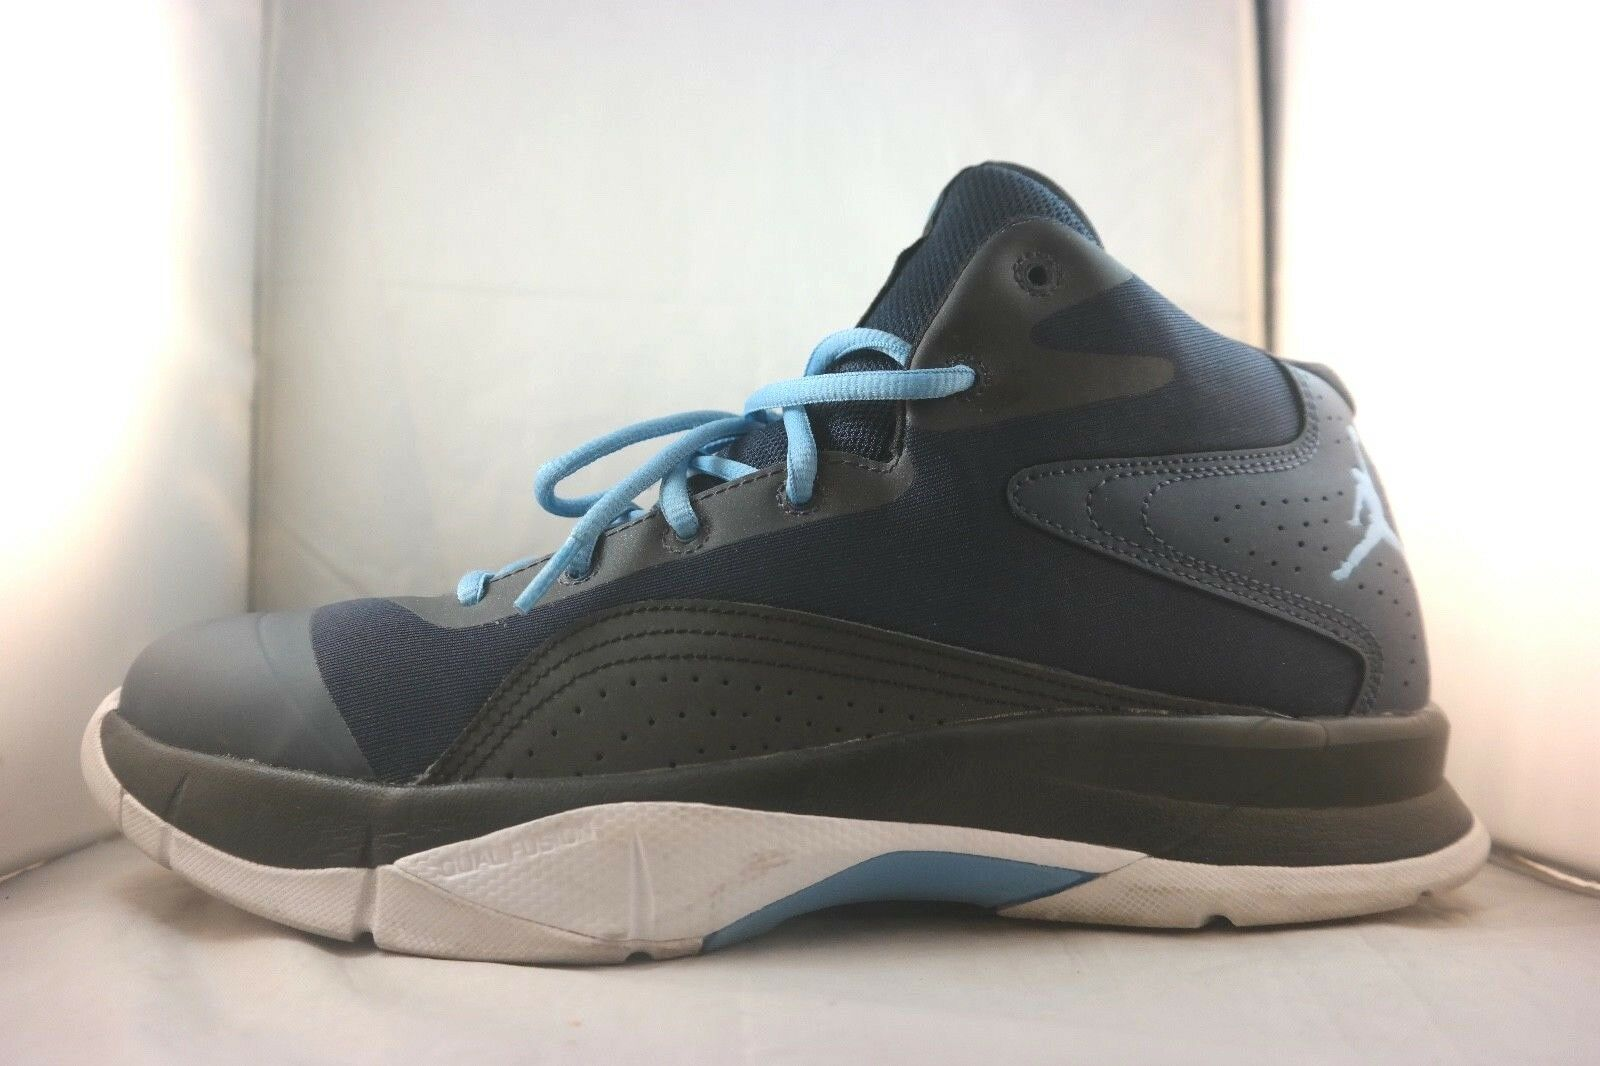 Nike Mens Jordan Court Vision OO Basketball Shoes Price reduction best-selling model of the brand